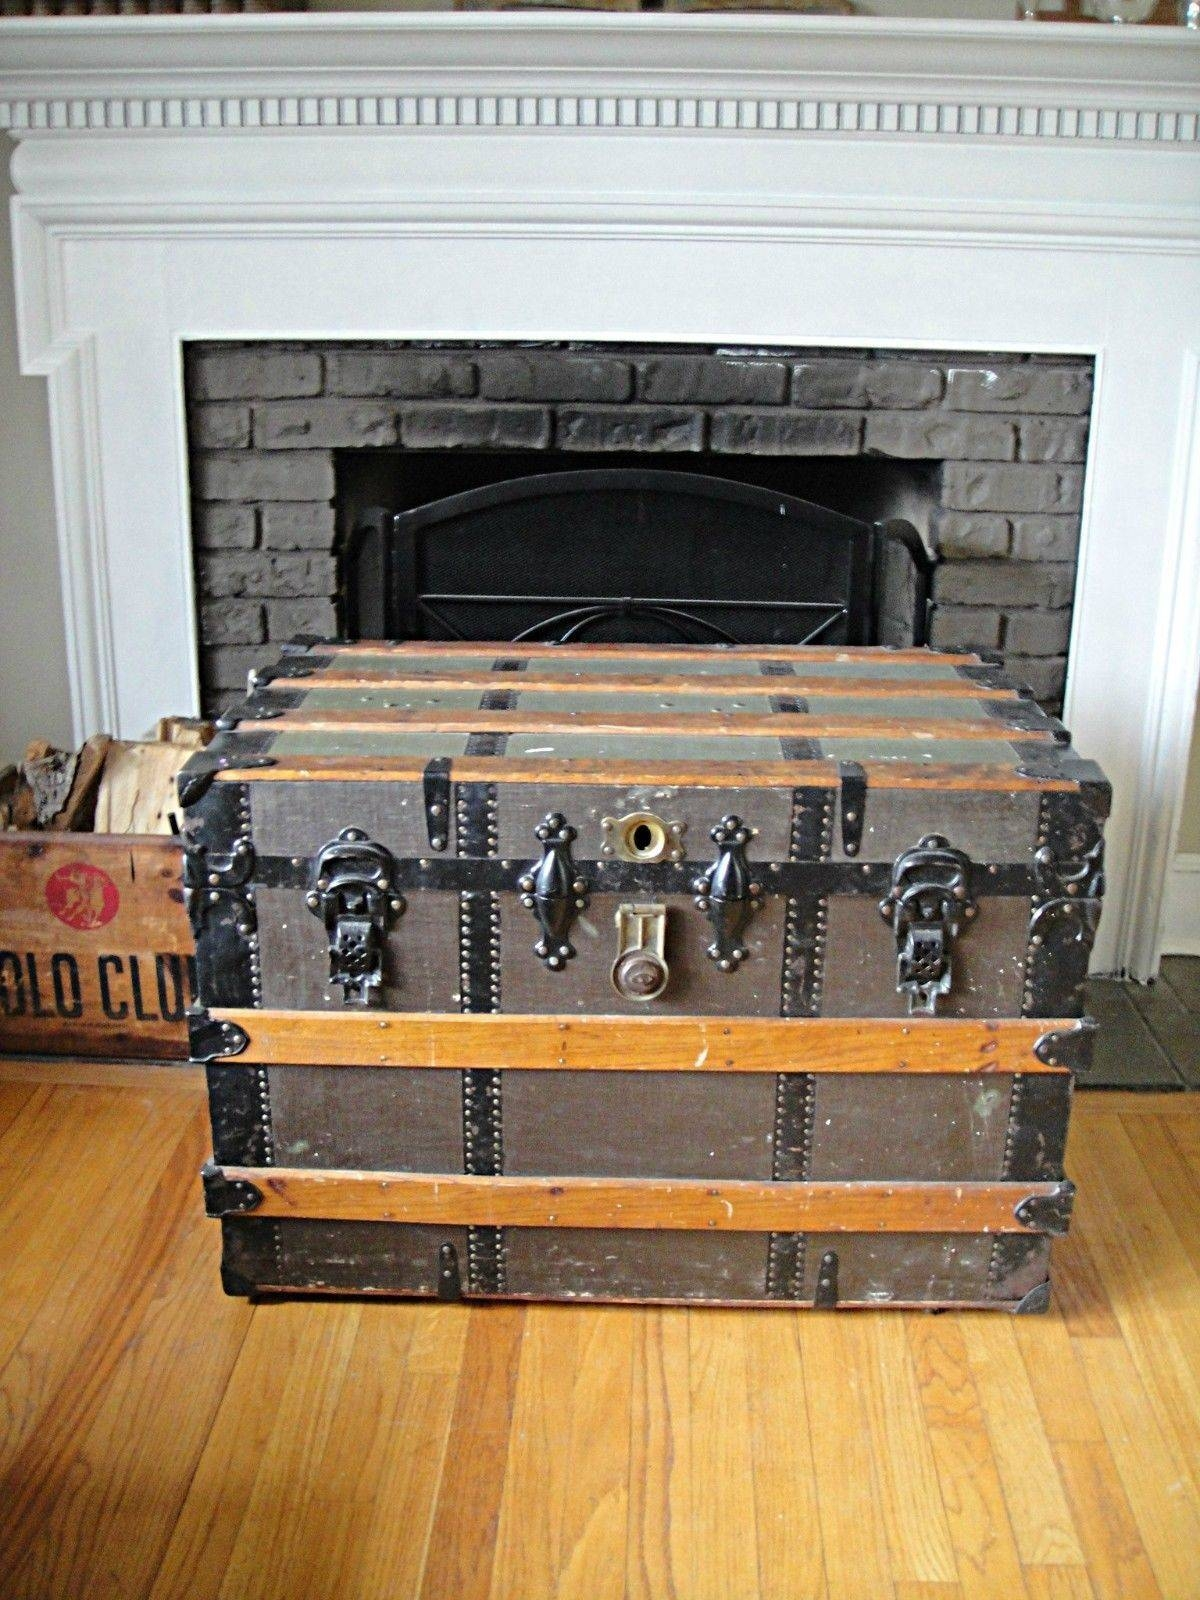 Drop Dead Gorgeous Steamer Trunk Coffee Table Stainless Steel pertaining to Steamer Trunk Stainless Steel Coffee Tables (Image 10 of 30)